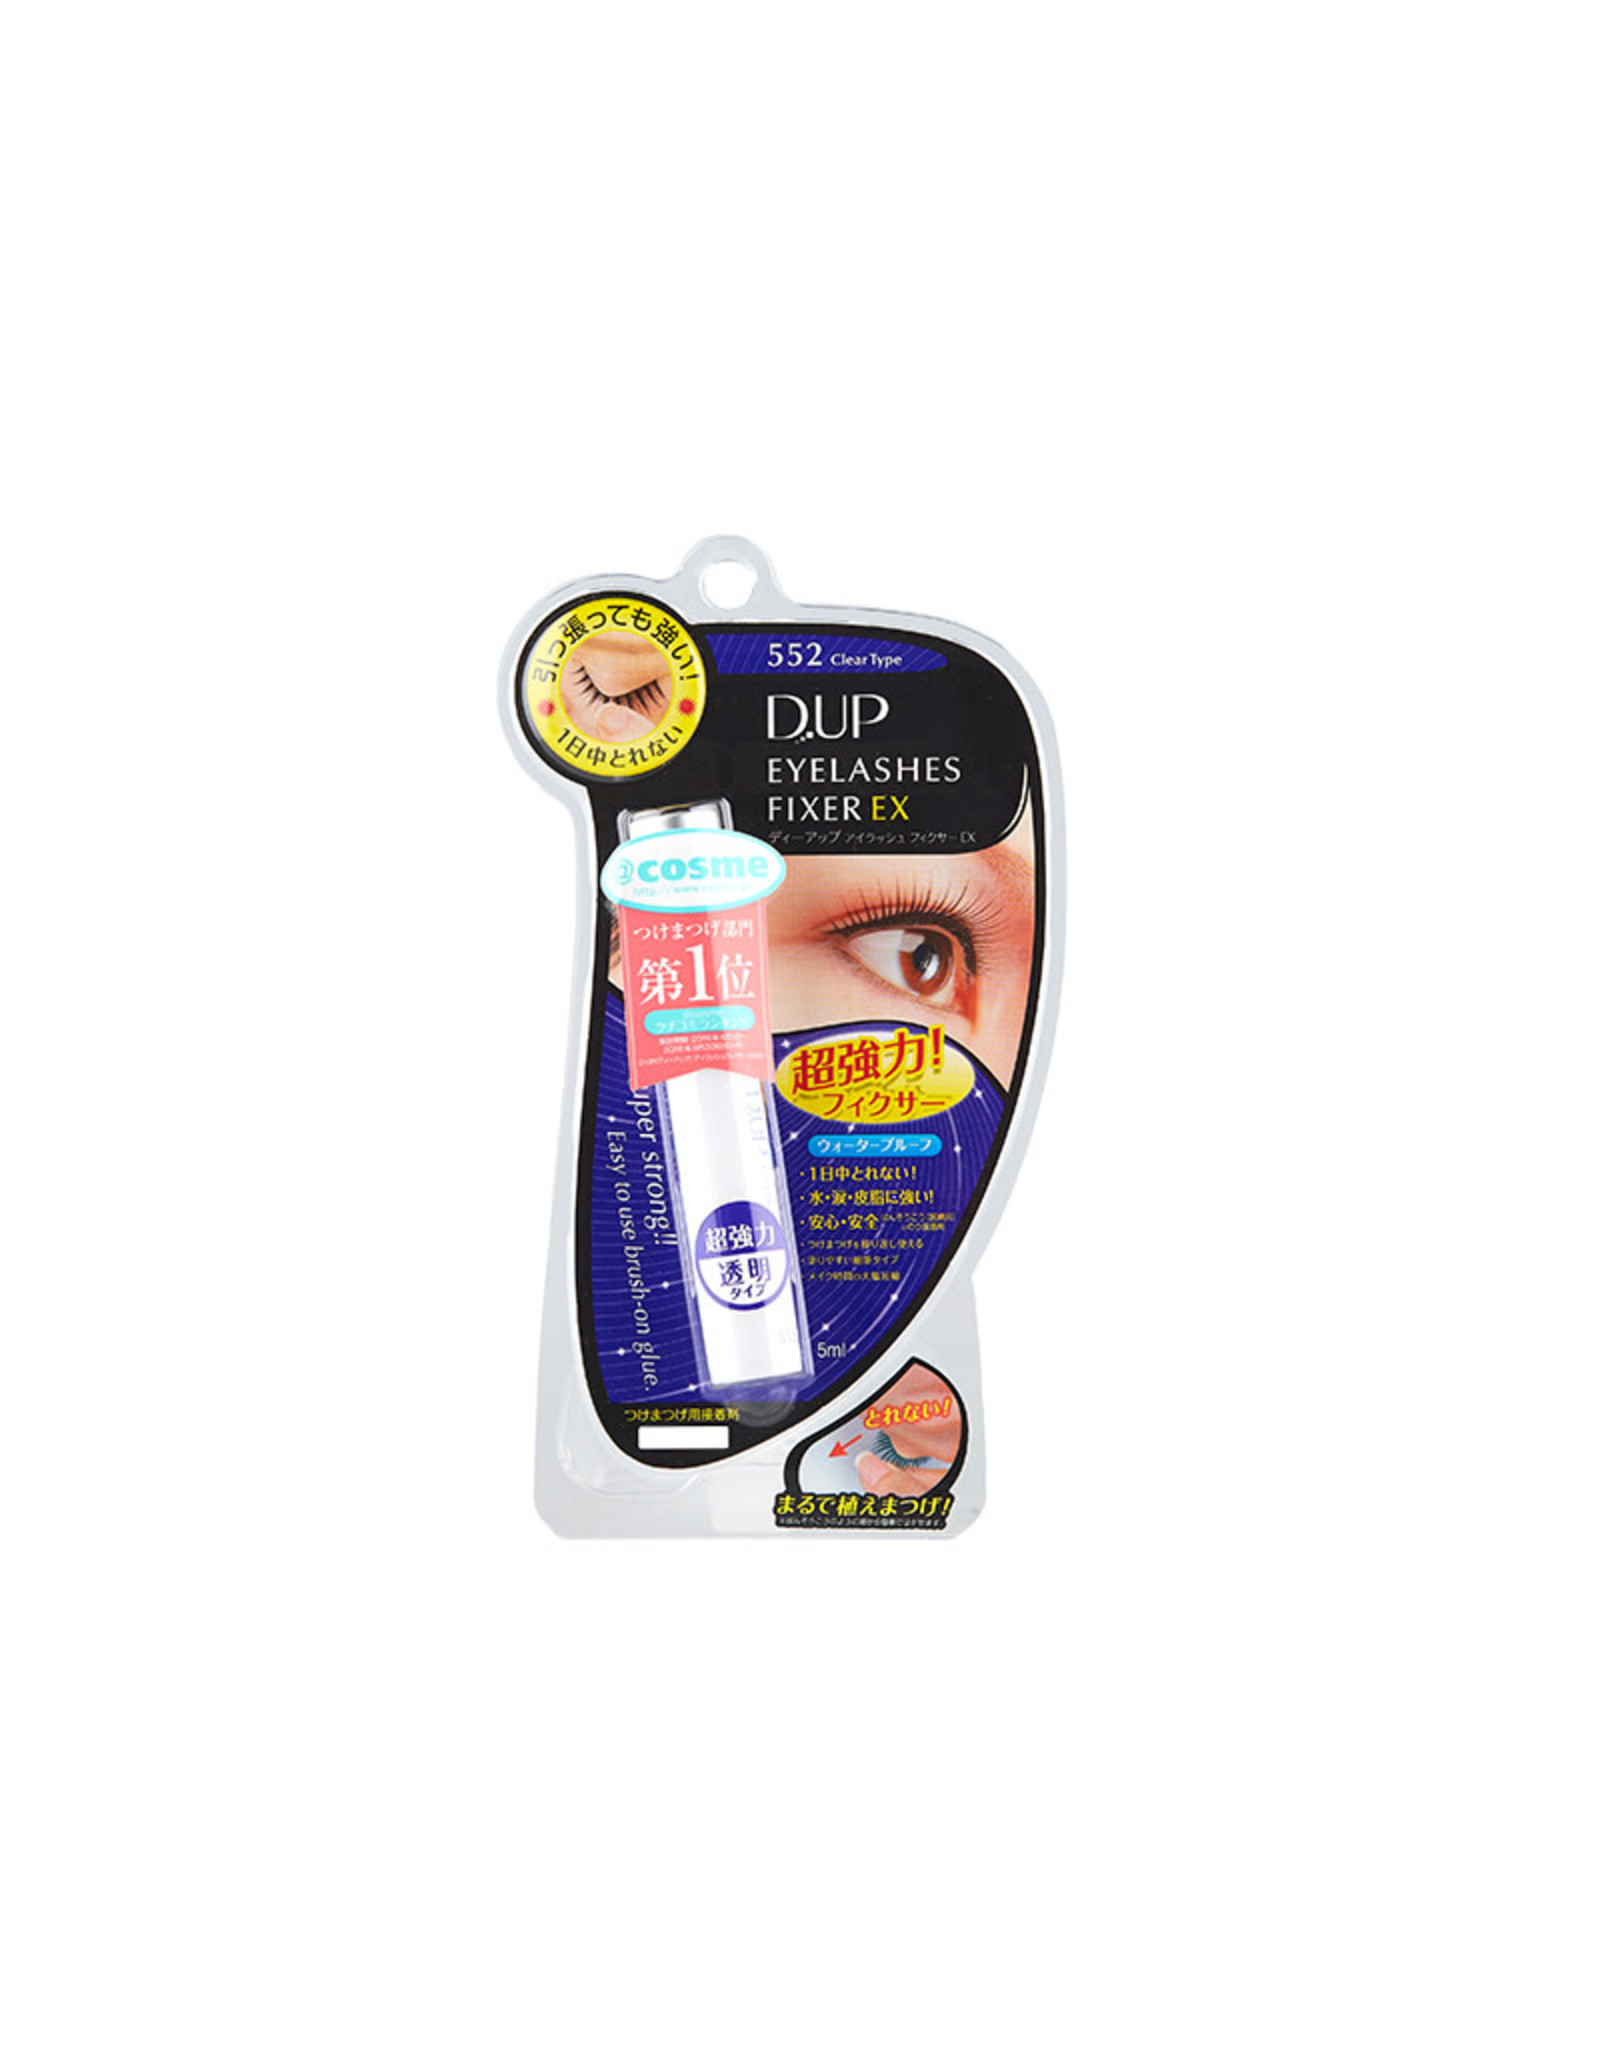 DUP Dup Eyelashes Fixer EX 552 Clear